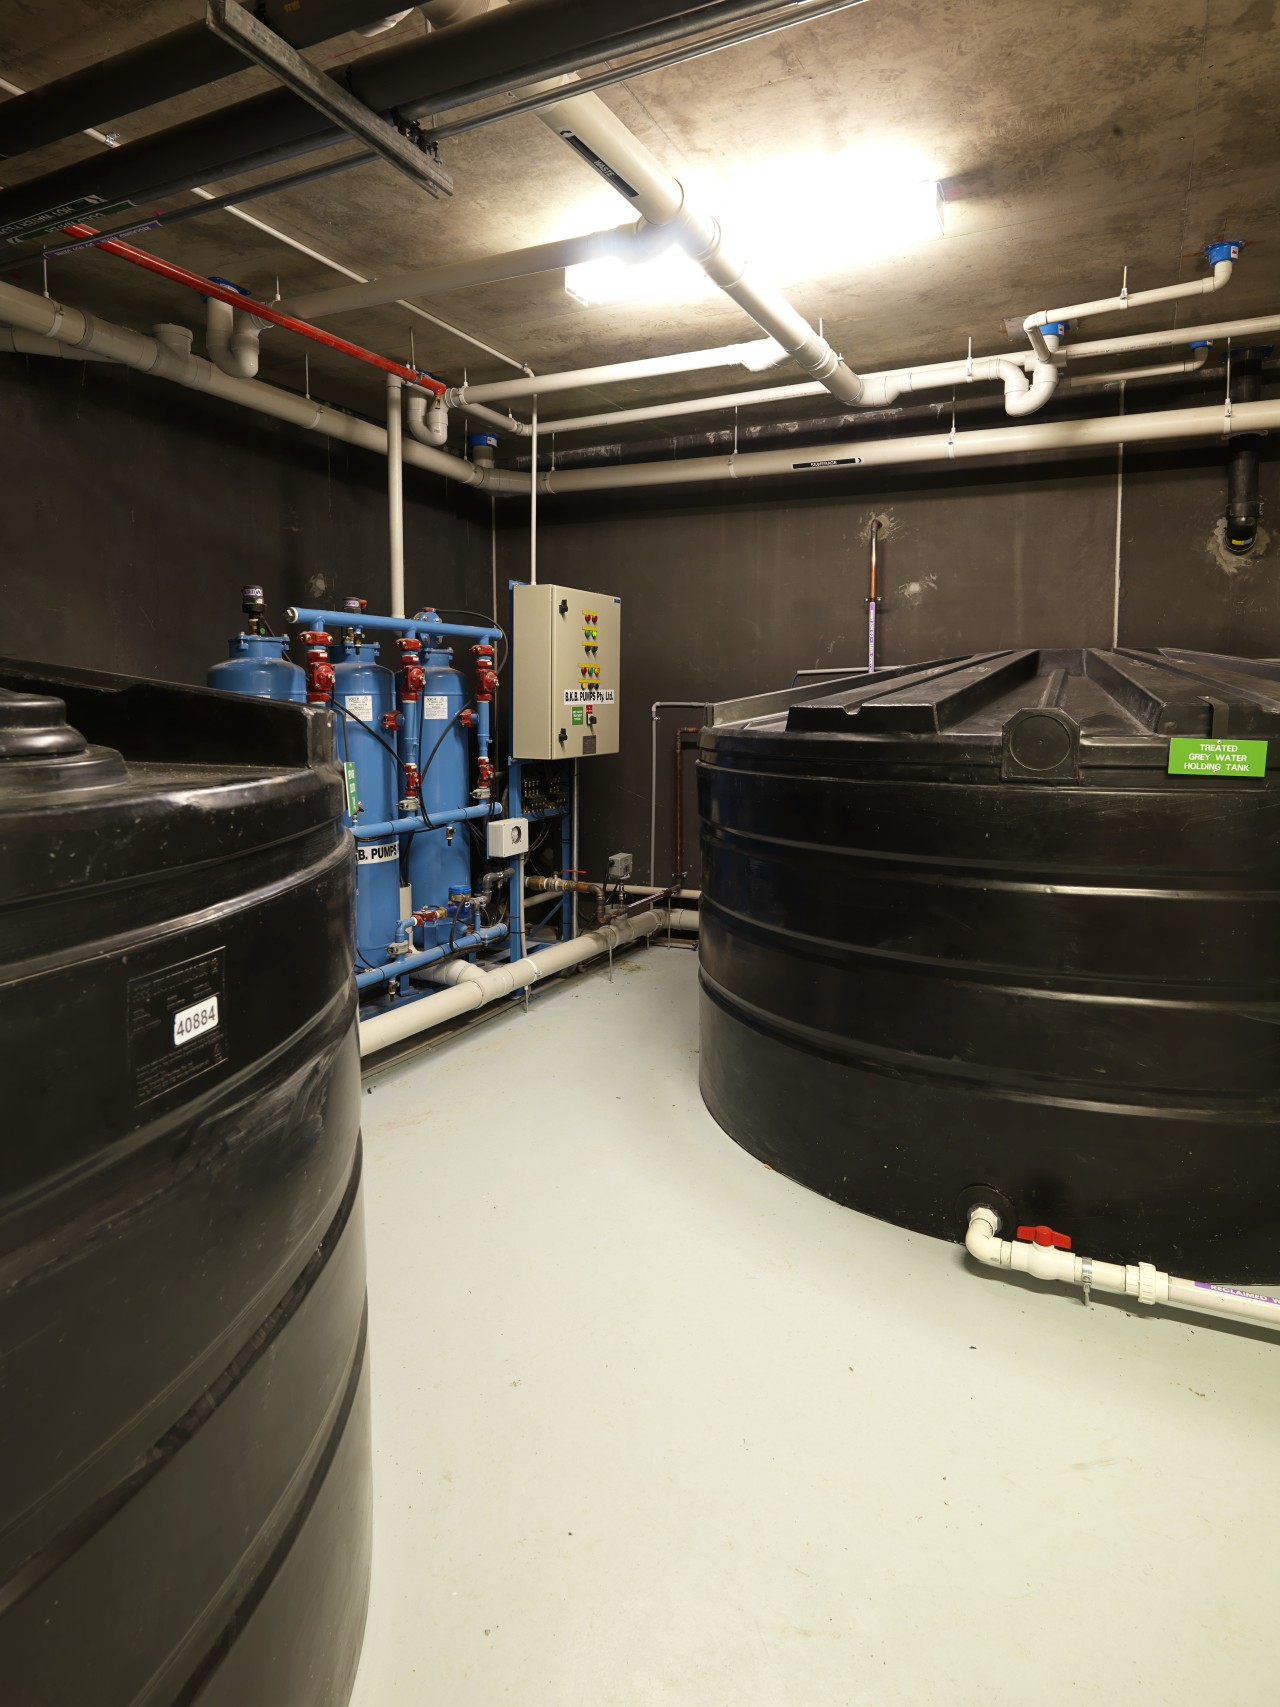 An energy-efficient air conditioning system works by distributing black